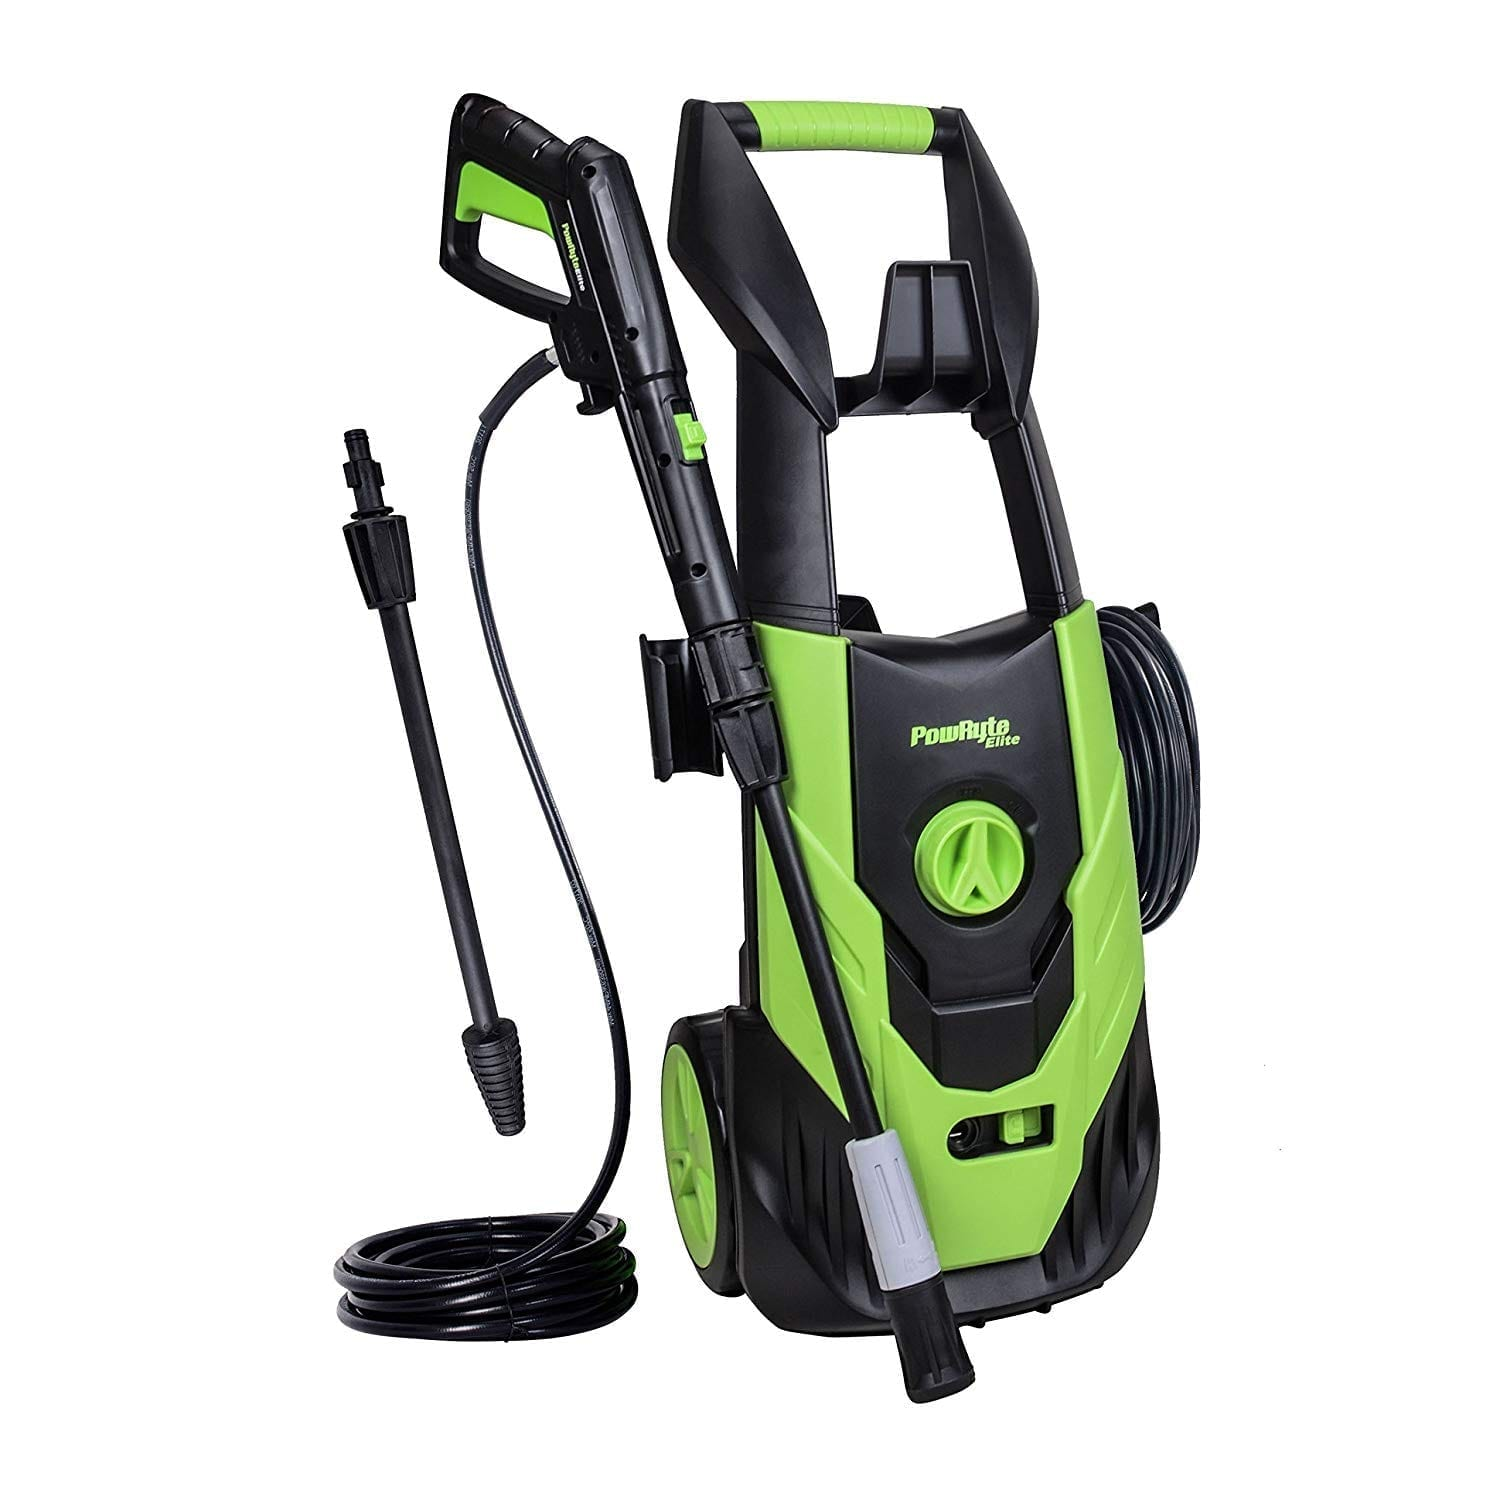 PowRyte Elite 2100psi 1.8GPM Electric Pressure Washer